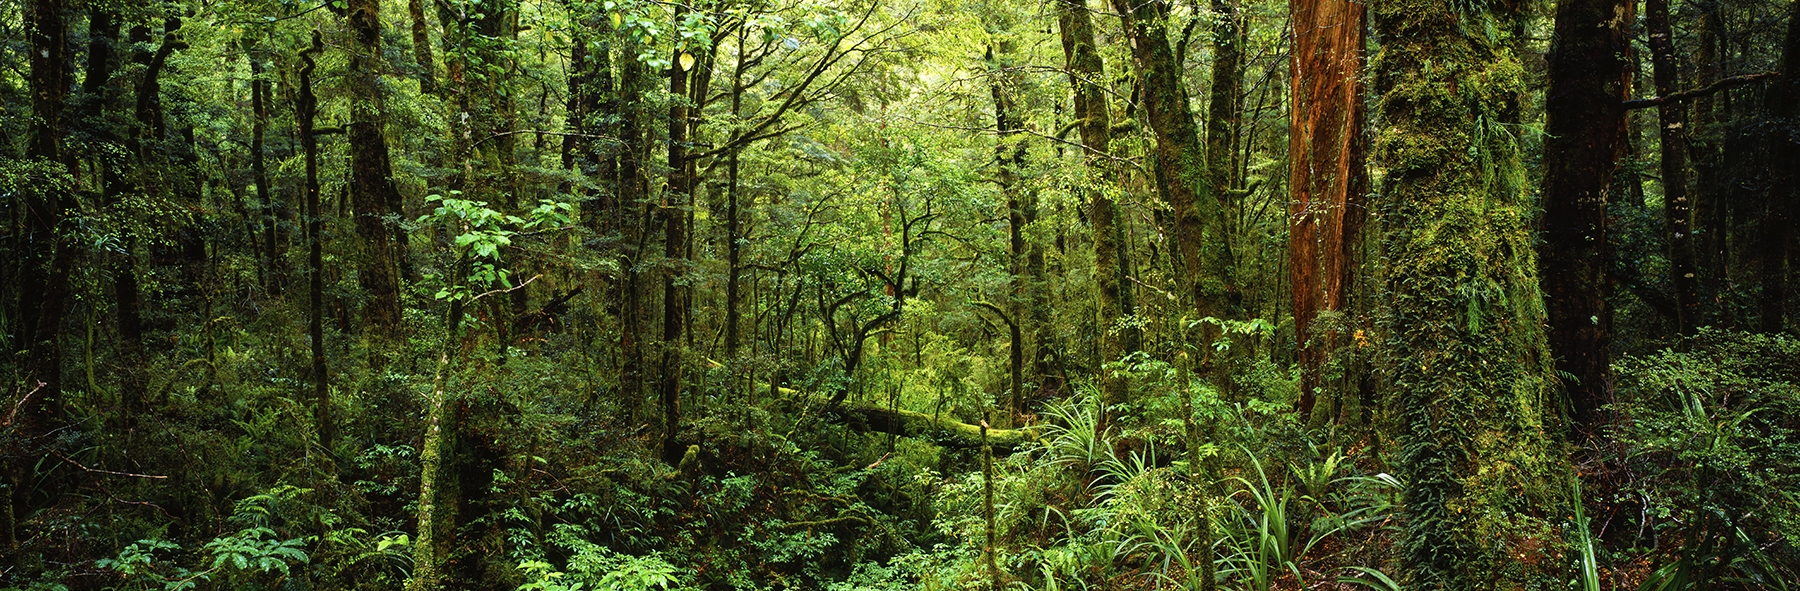 Forest near Haast, New Zealand. A Limited Edition Fine Art Landscape Photograph by Richard Hume